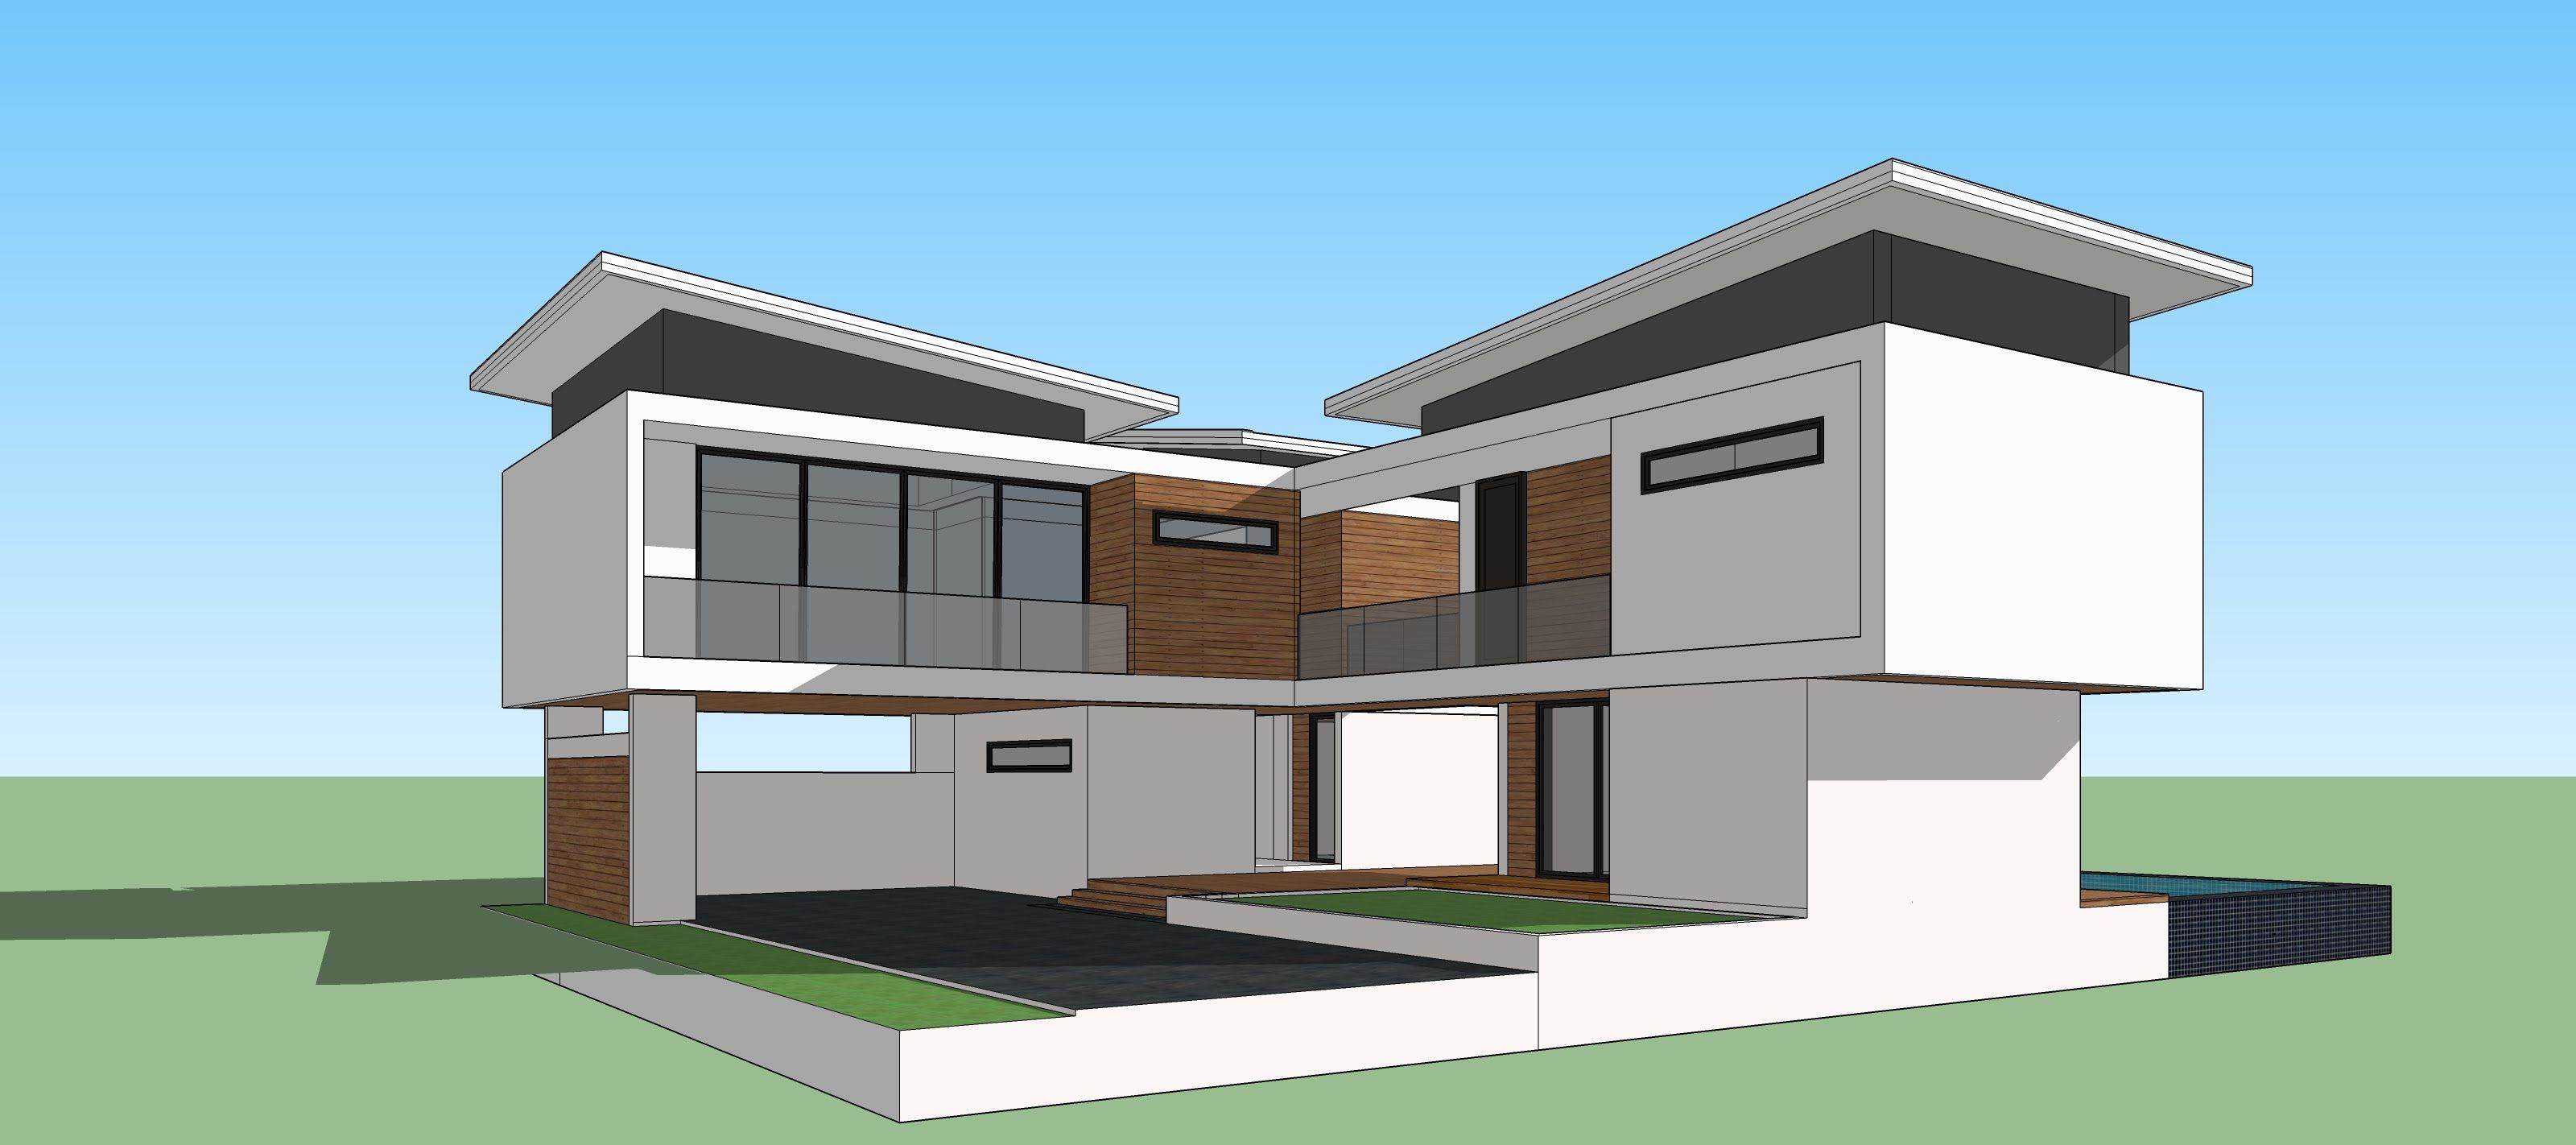 If you are looking forward to enrol yourself in a SketchUp ...